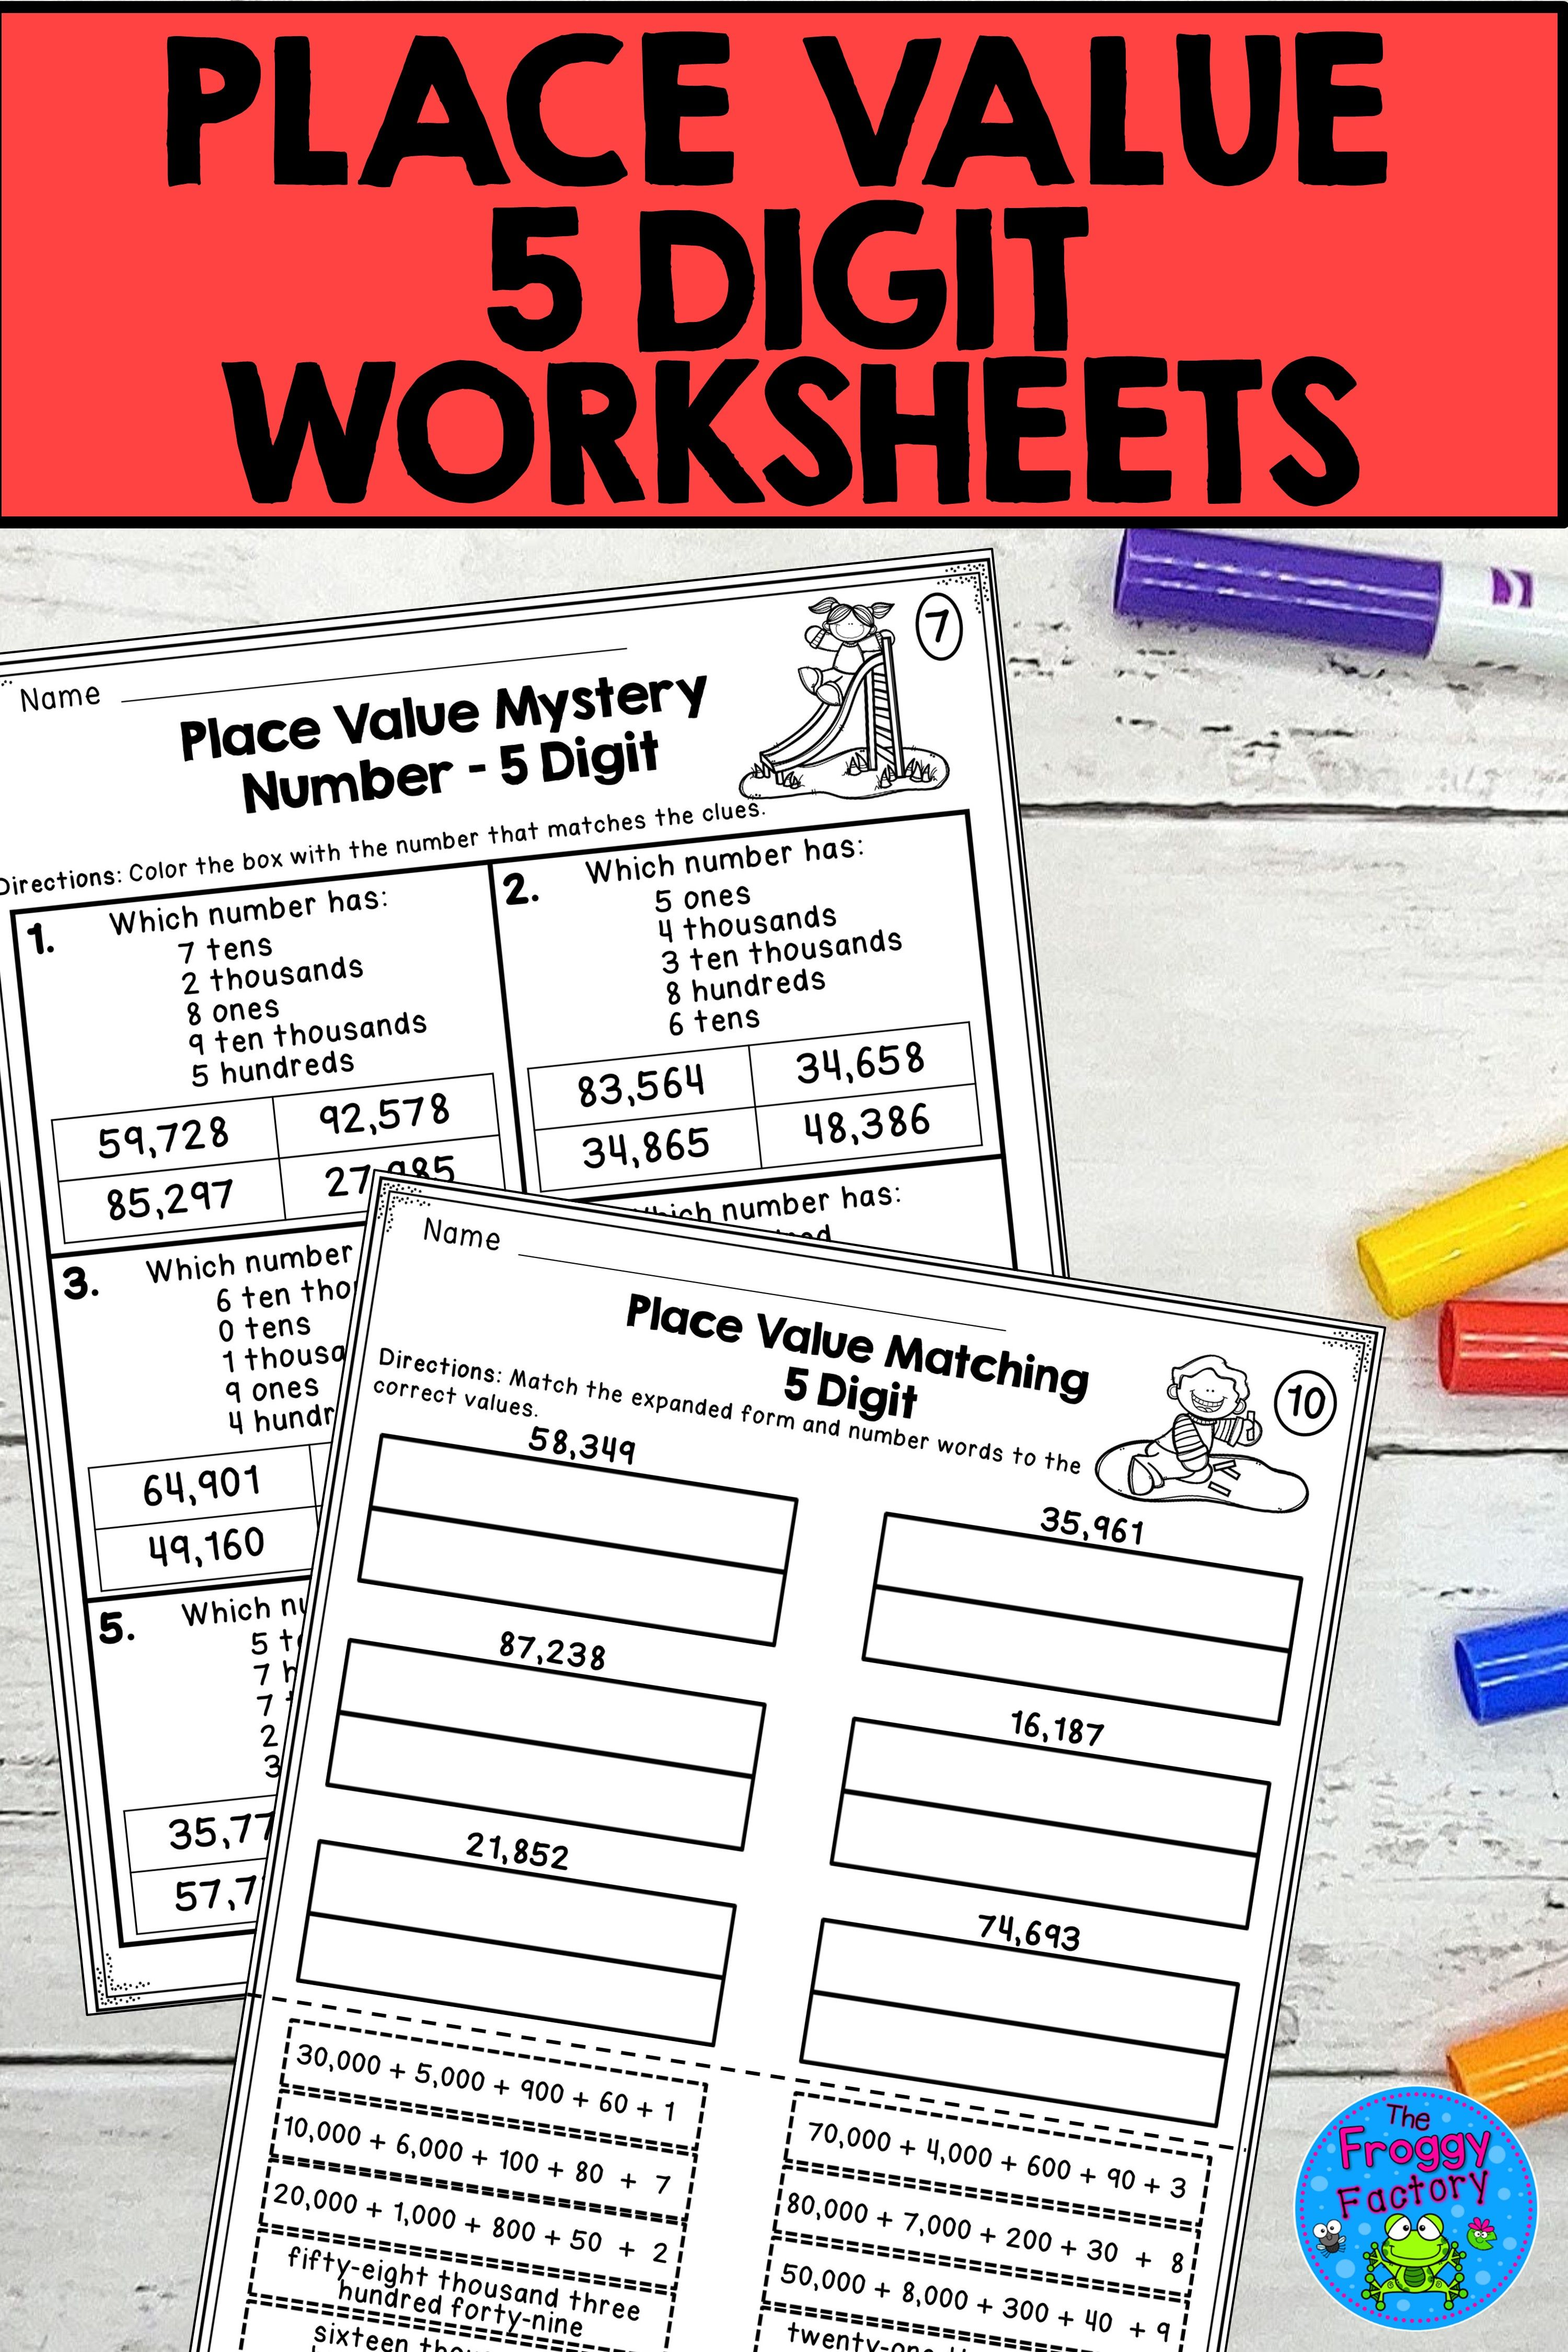 hight resolution of Place Value 5 Digit Worksheets   Place value worksheets